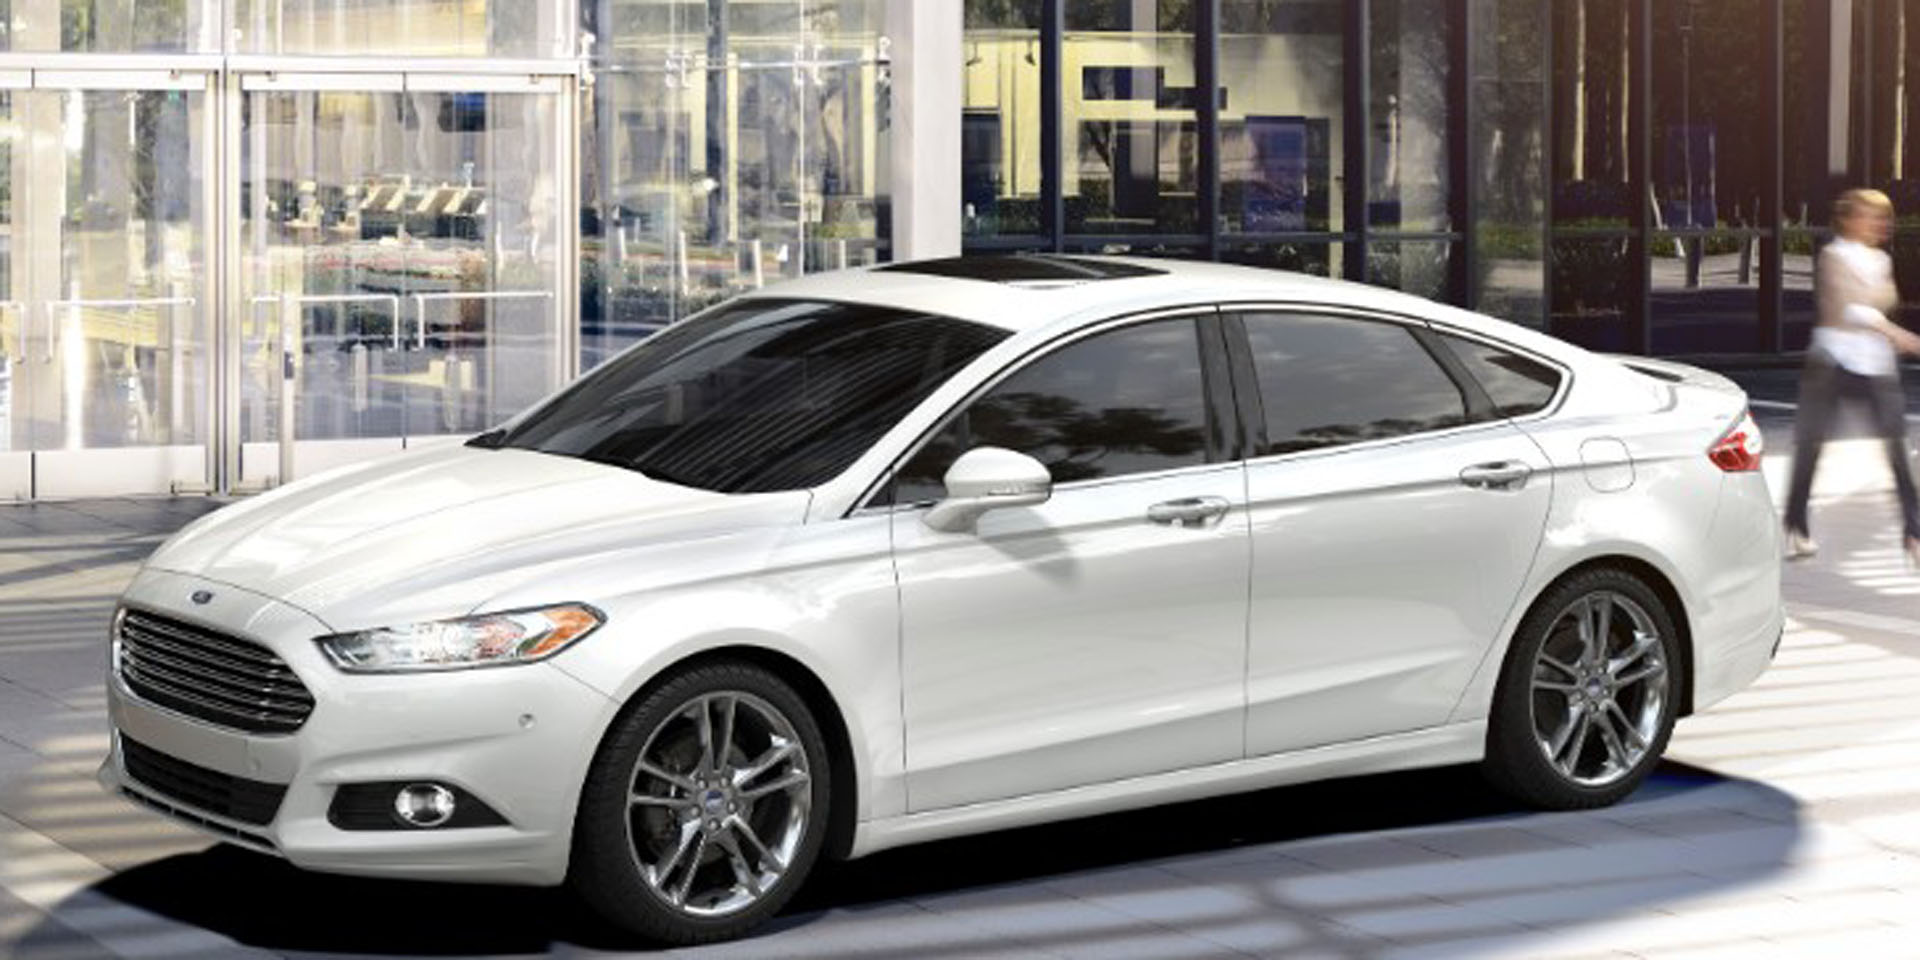 2016 Ford Fusion #6